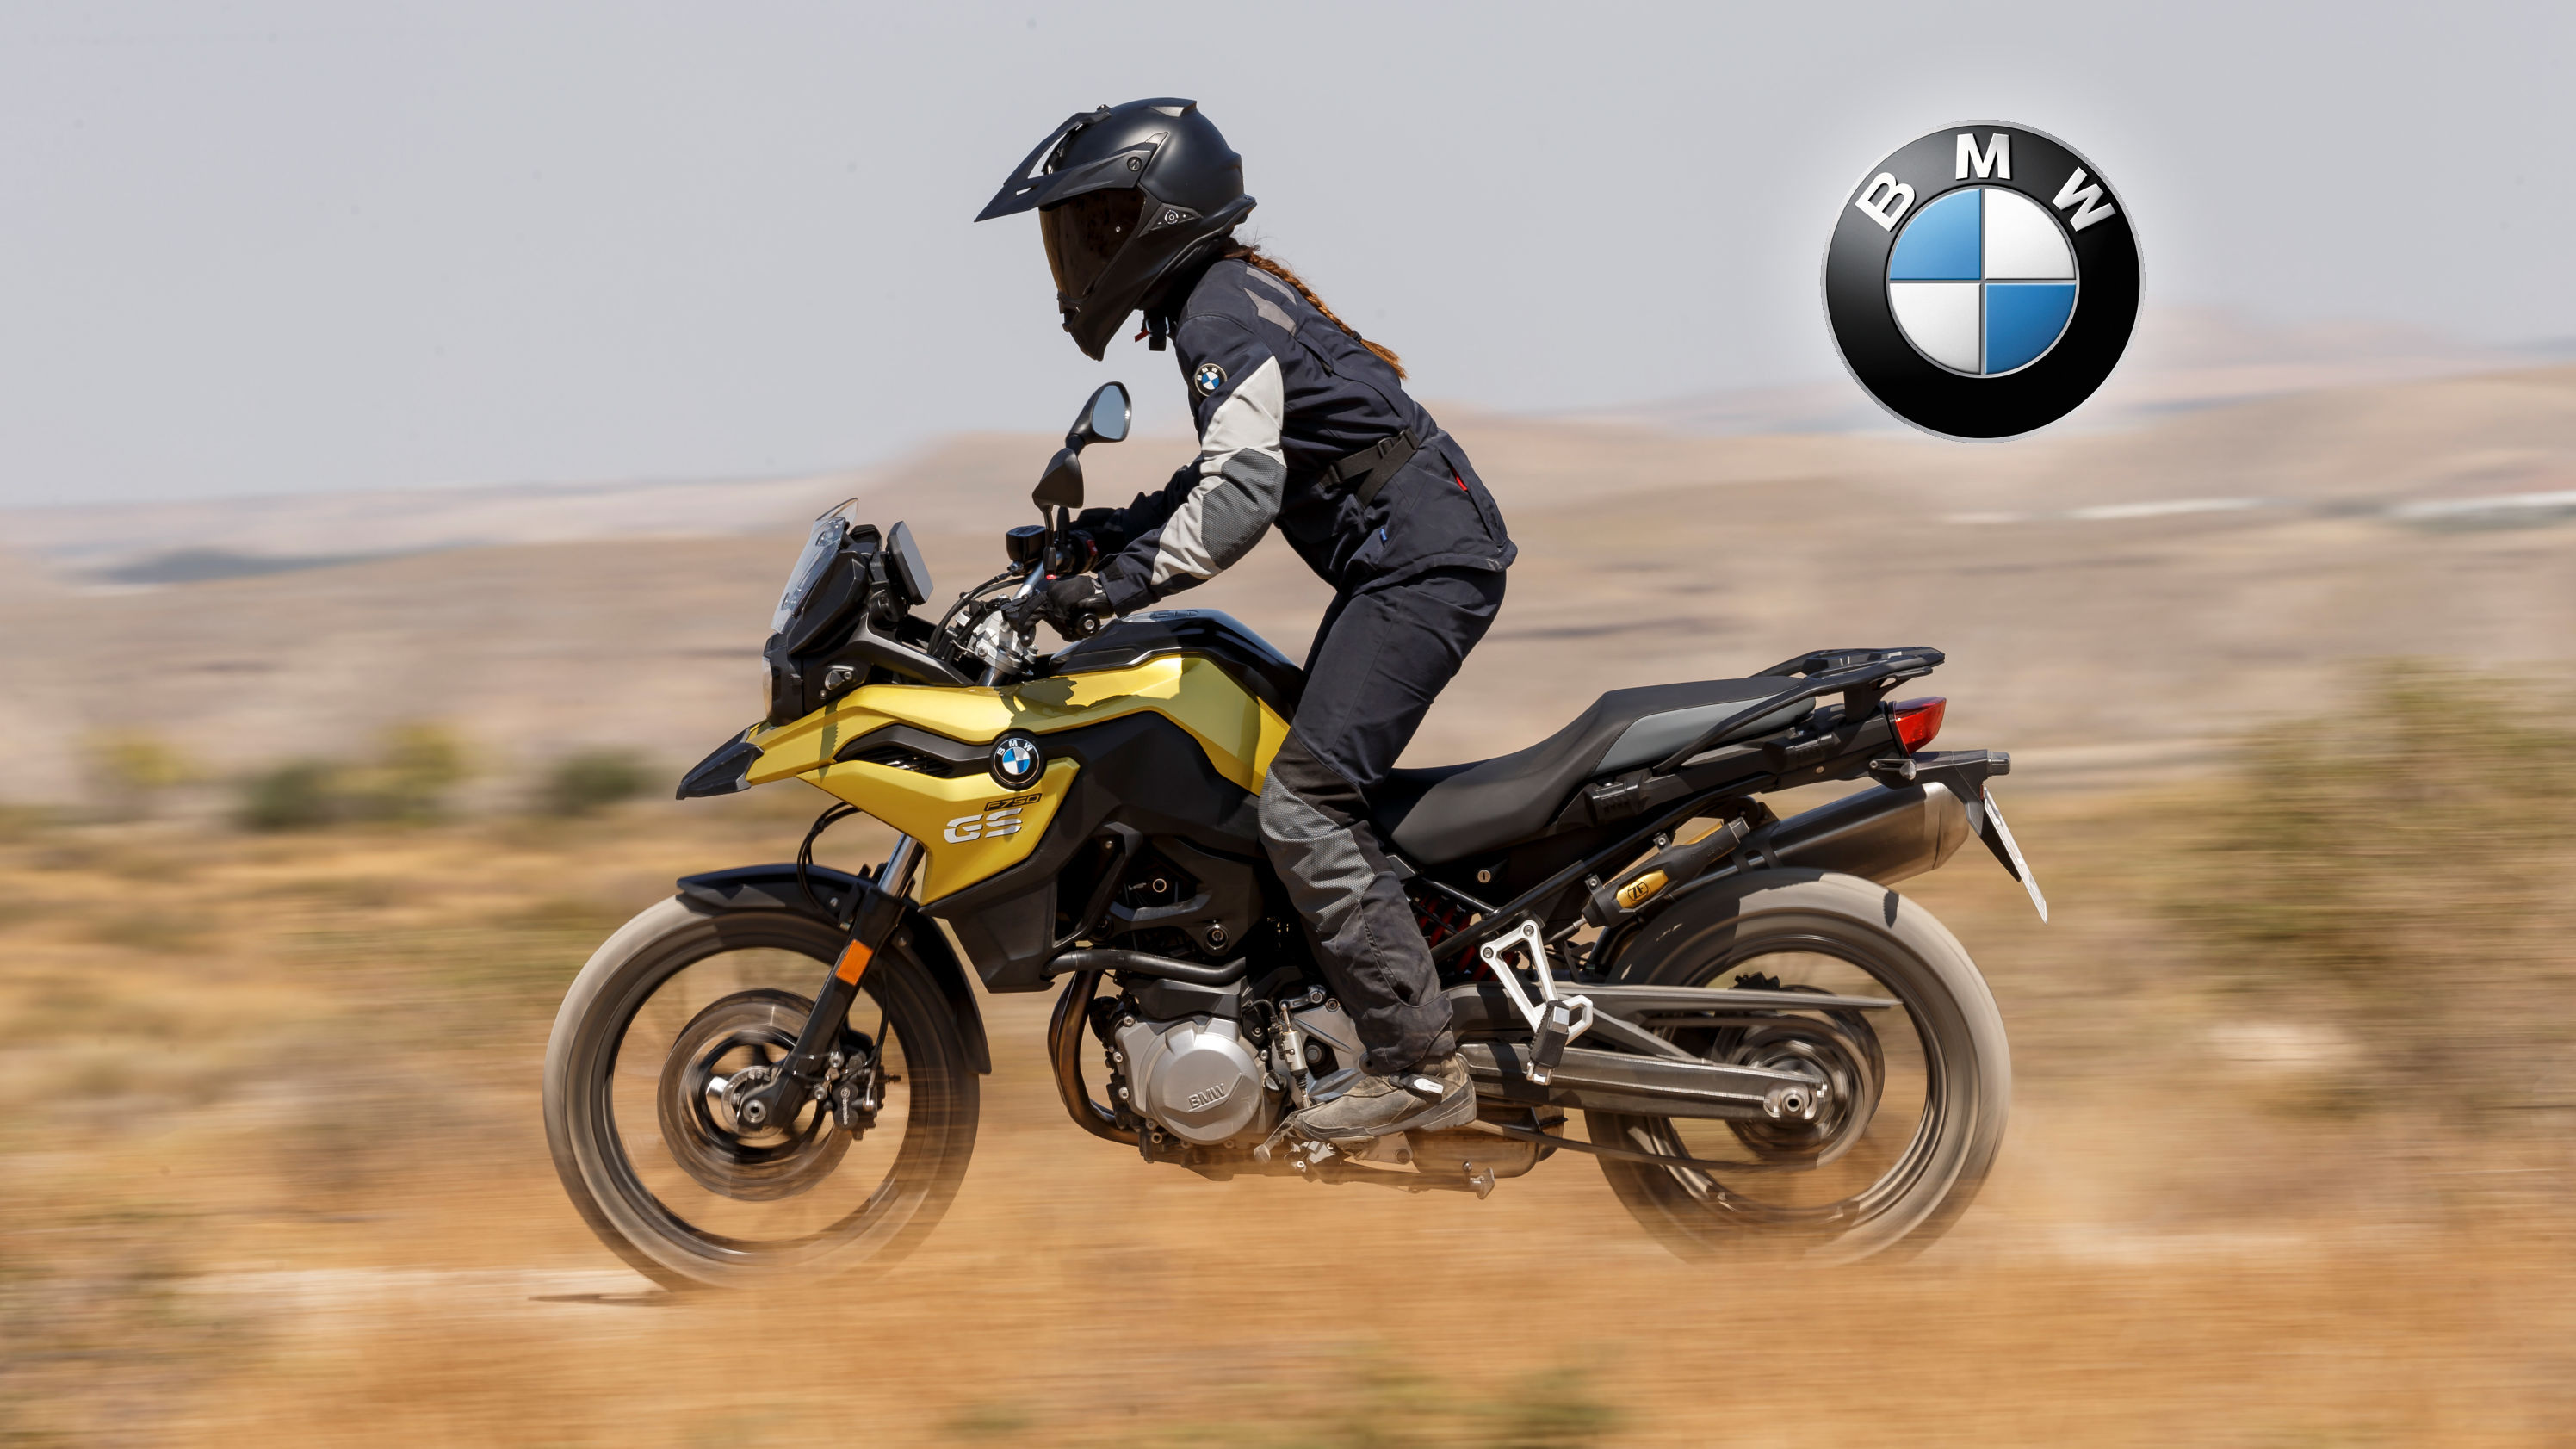 2018 Bmw F 750 Gs 850 Top Speed The Line Of Bikes